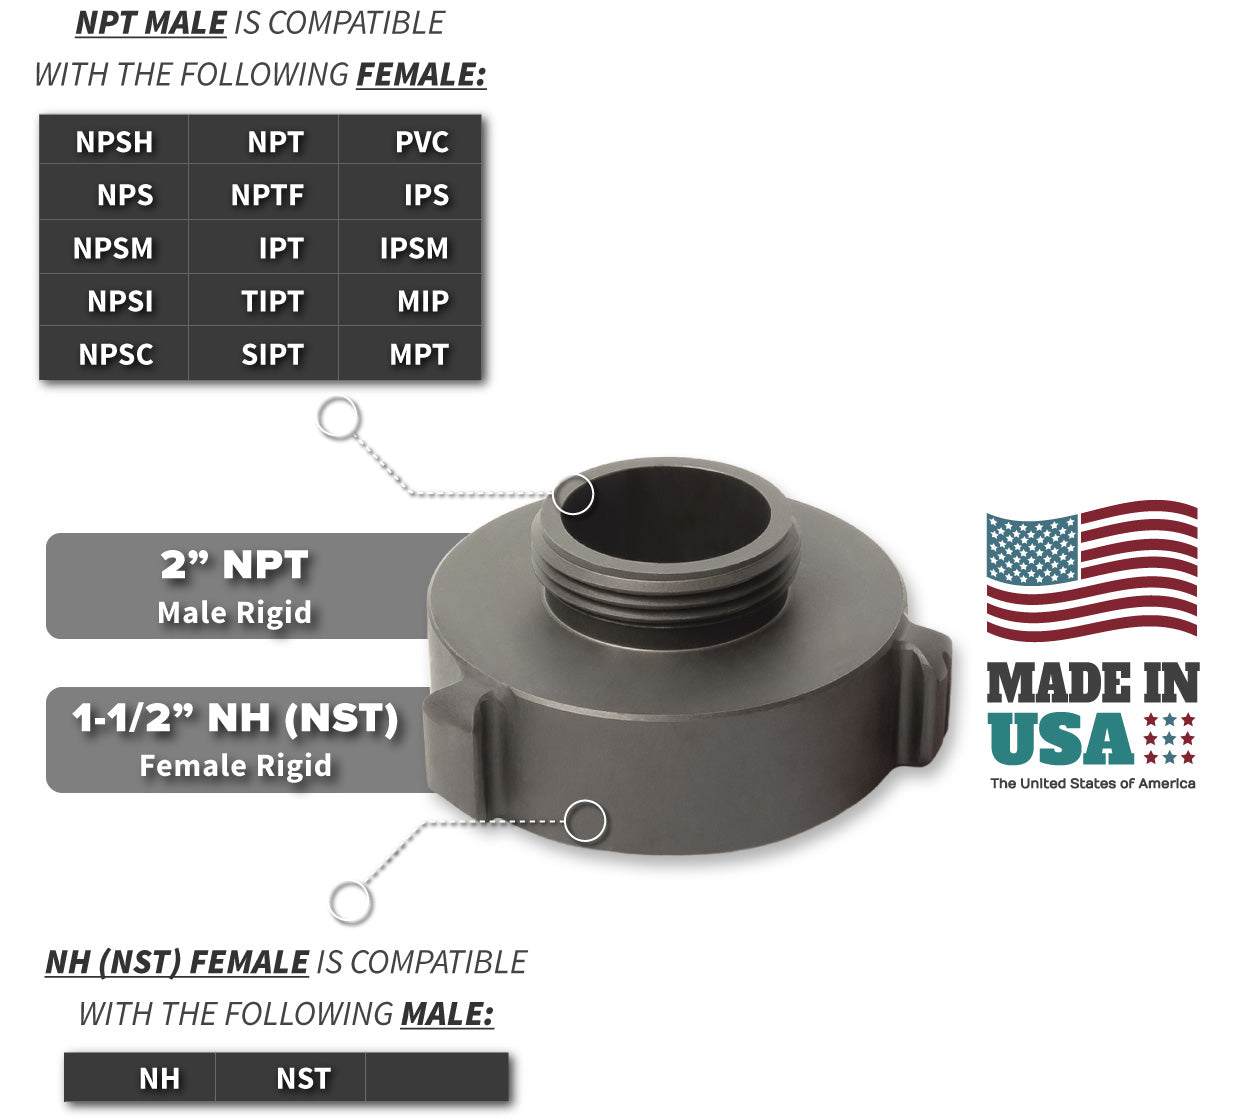 1.5 Inch NH-NST Female x 2 Inch NPT Male Compatibility Thread Chart